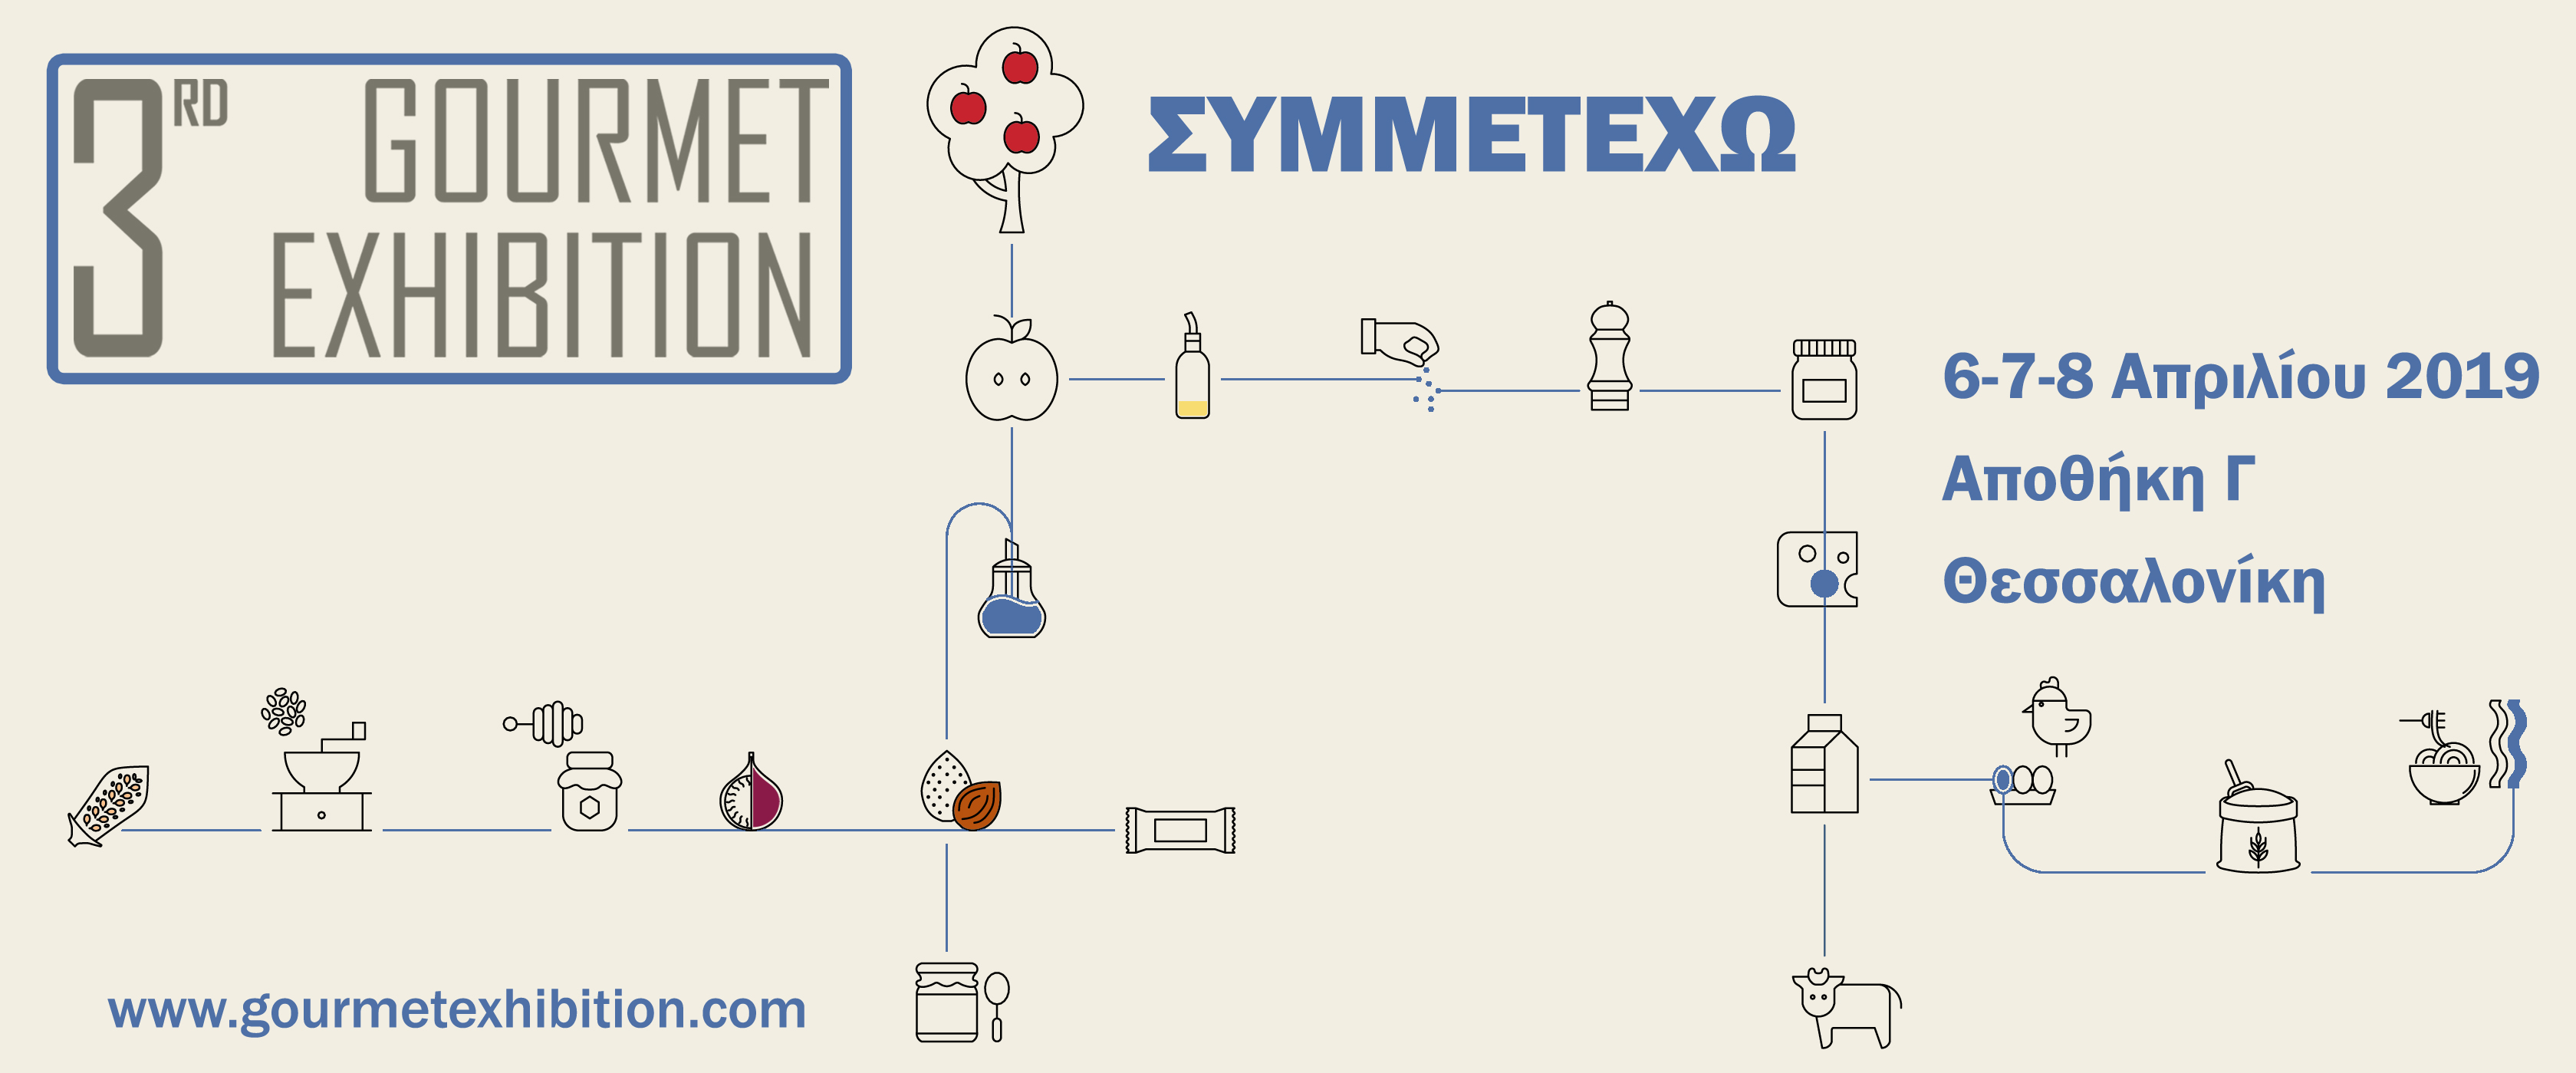 You are currently viewing 3rd Gourmet Exhibition | 48 εκδηλώσεις στη 'Gourmet Exhibition' που αναδεικνύουν τα ελληνικά προϊόντα!